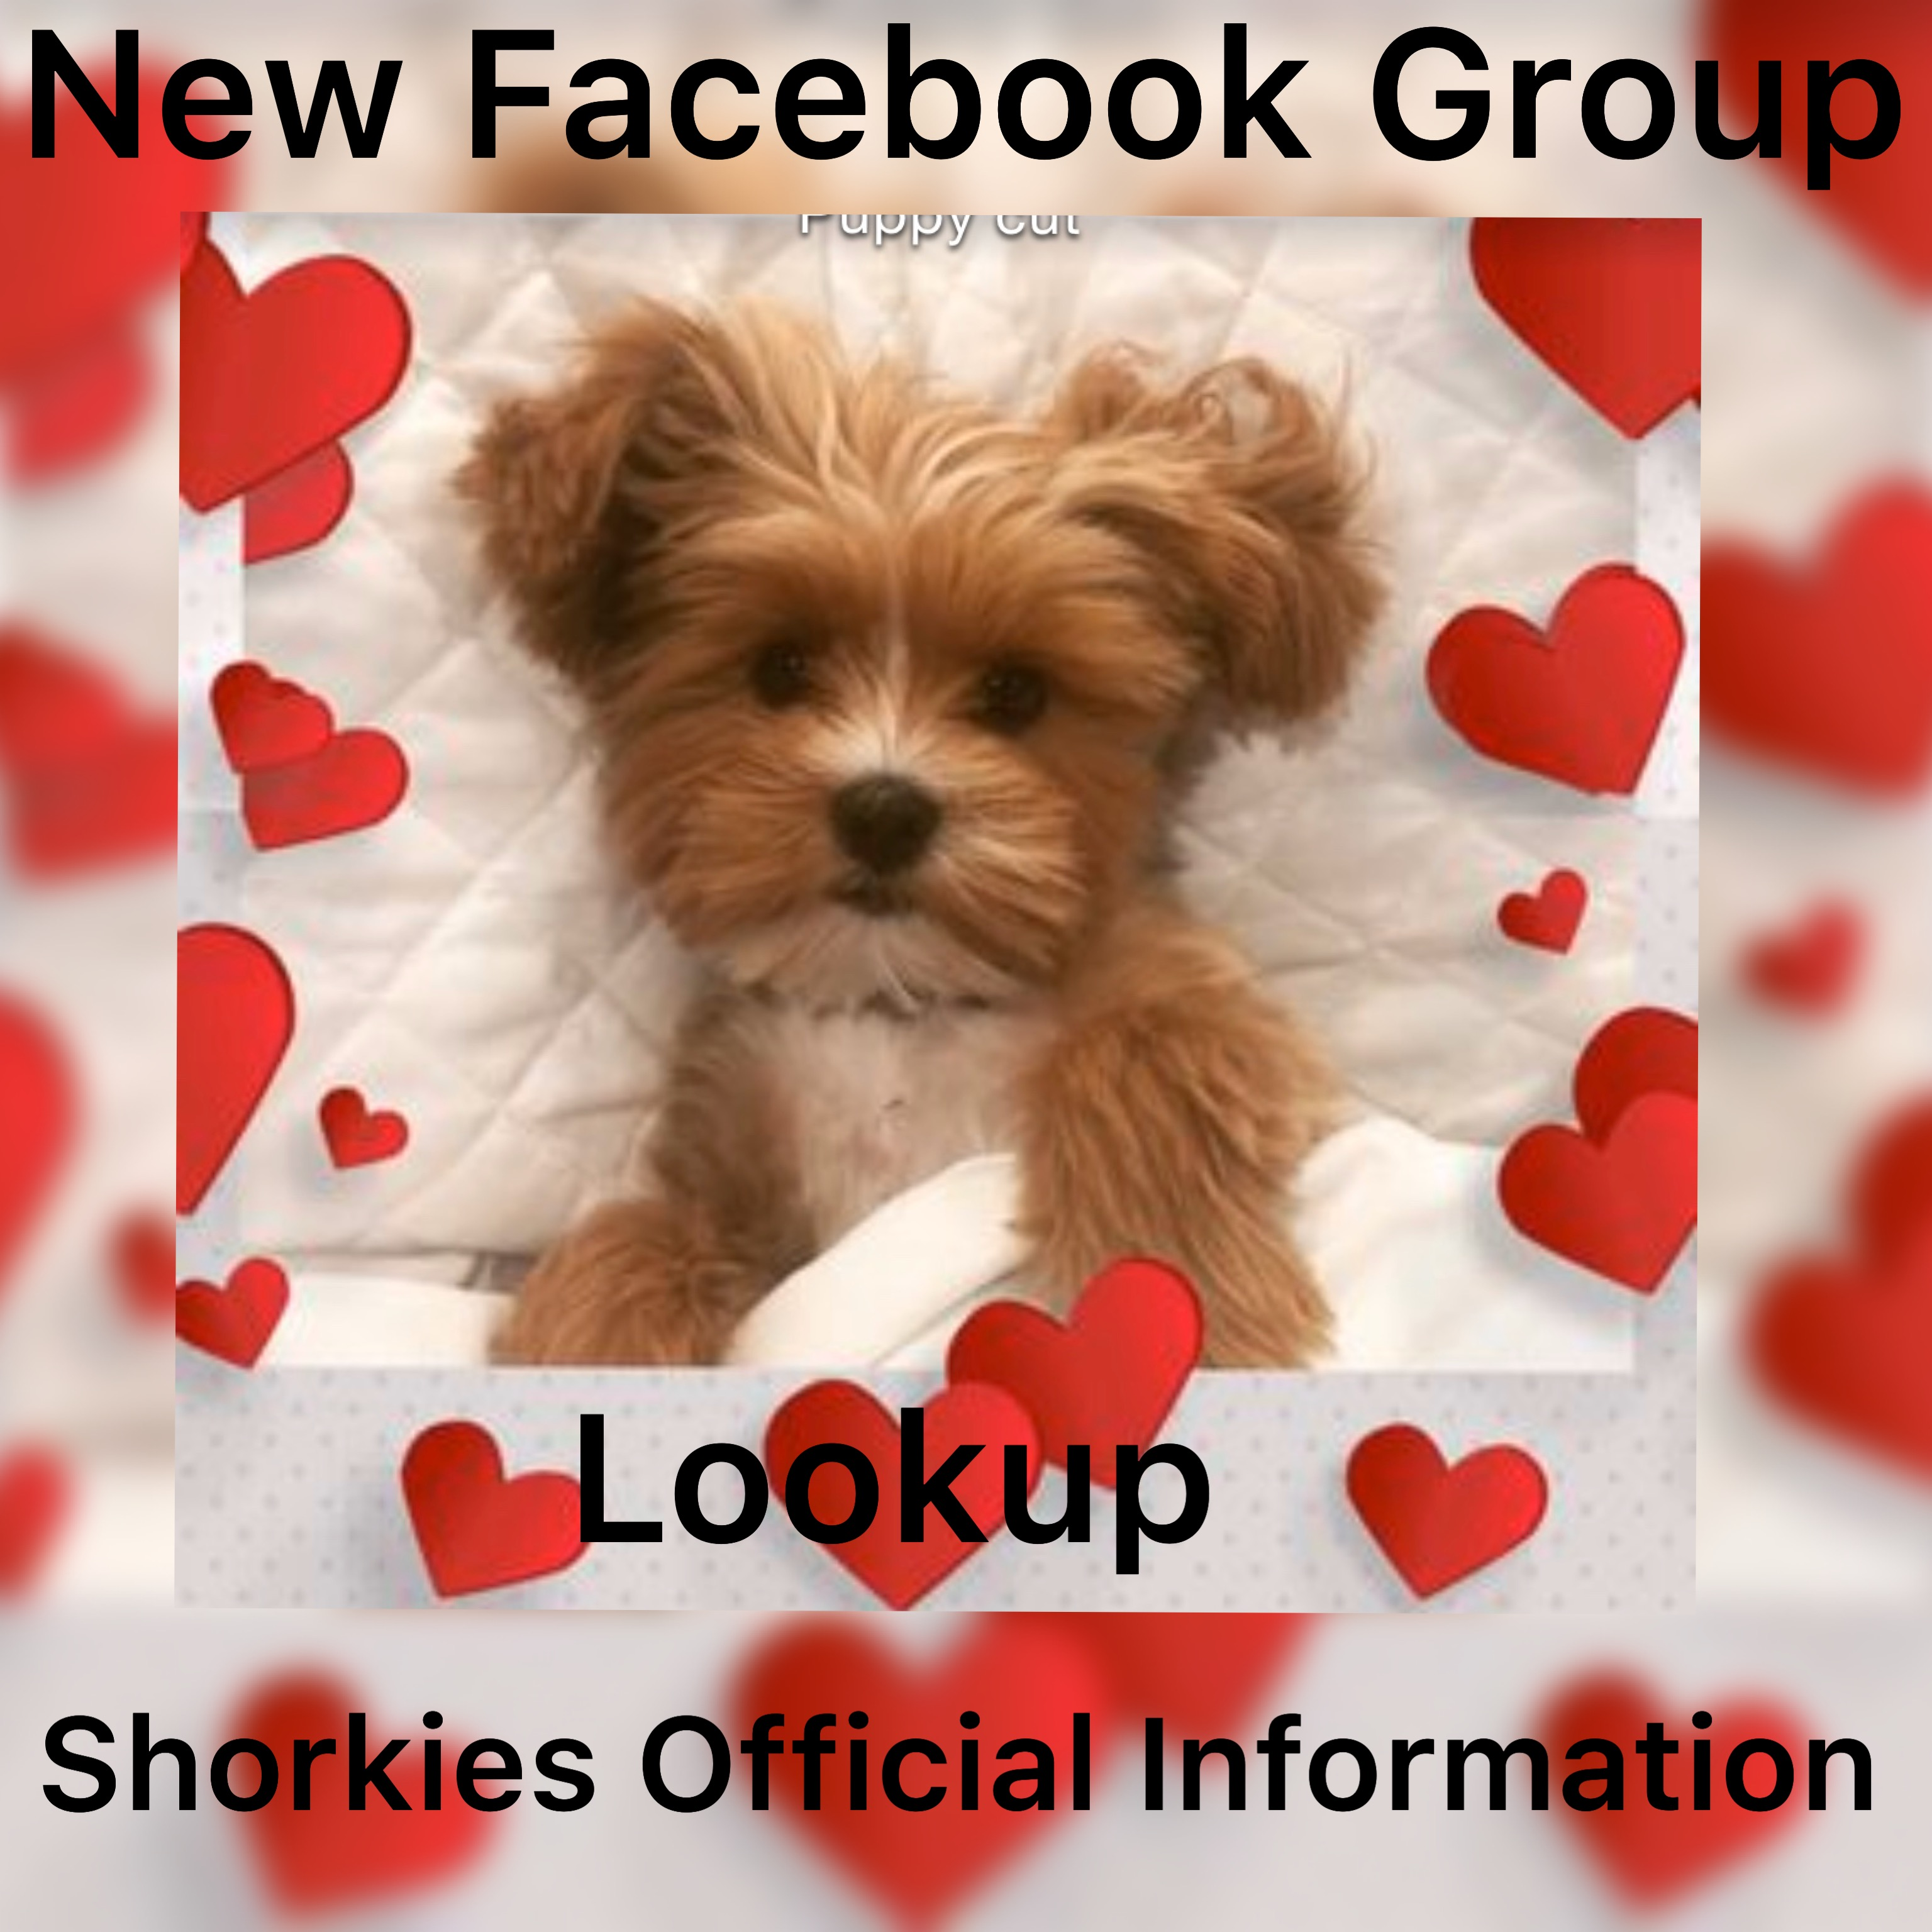 NEW FACEBOOK GROUP! Shorkies Official Information